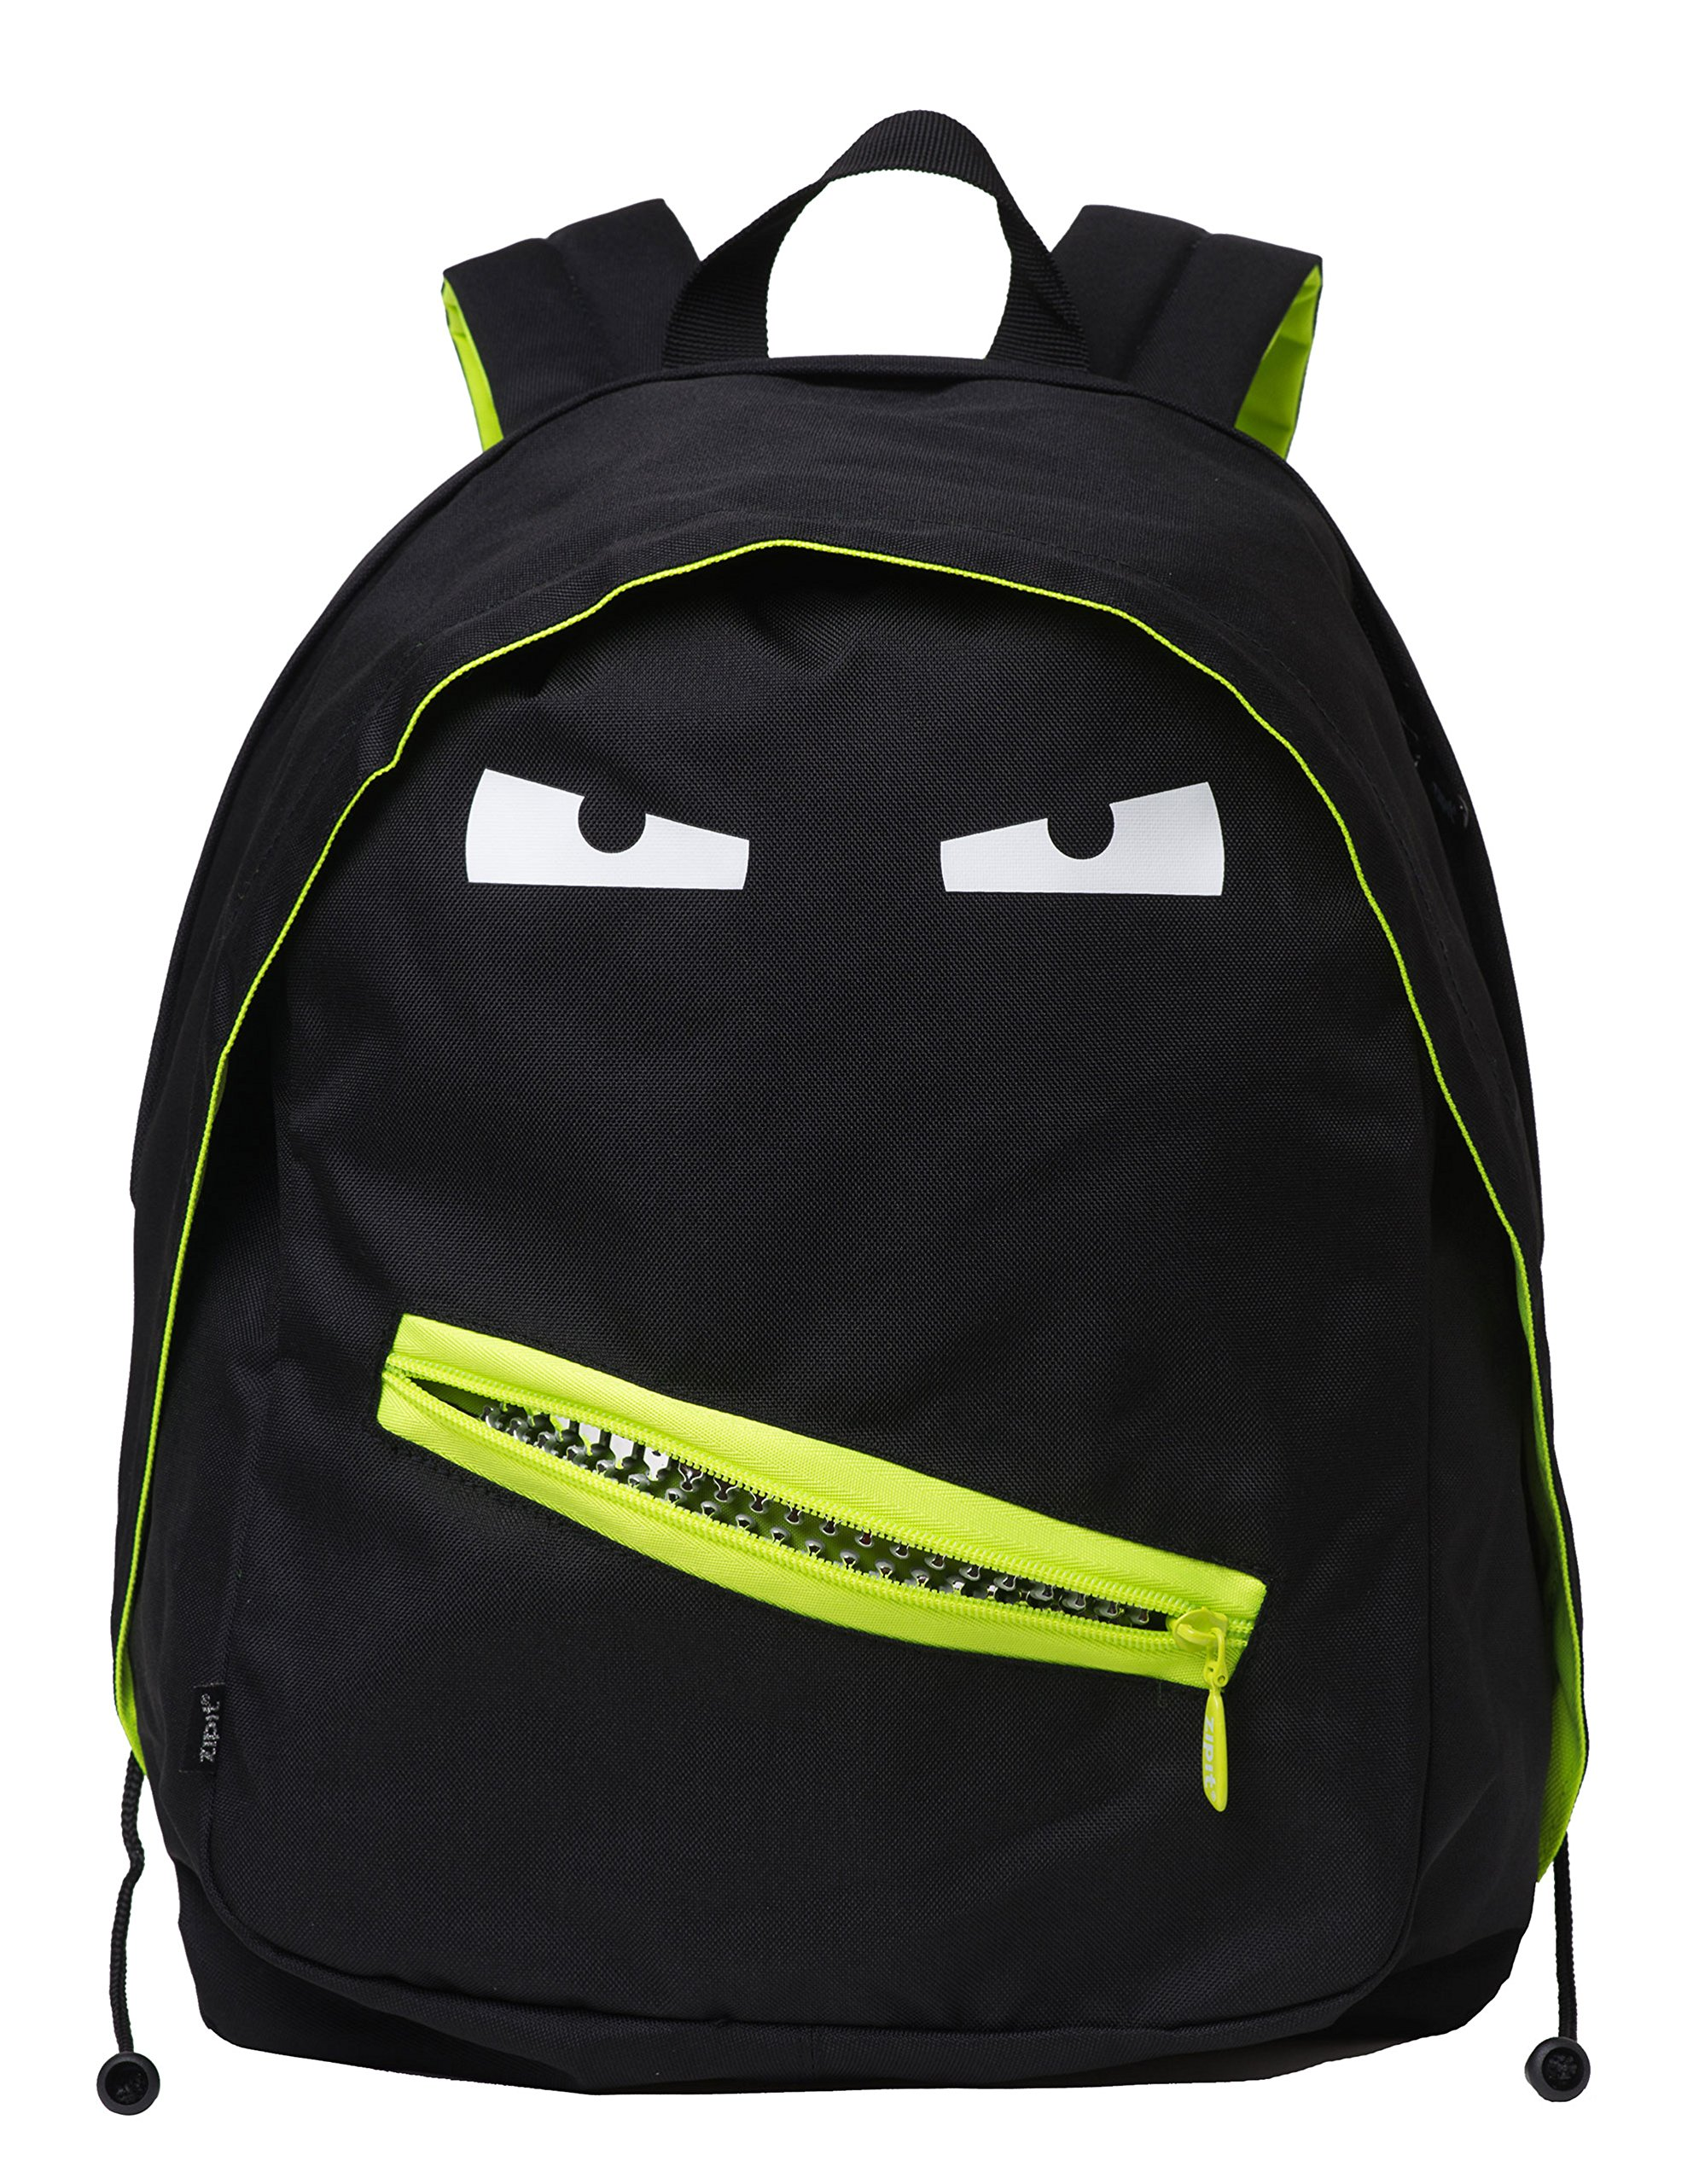 ZIPIT Grillz Backpack for Kids, Black